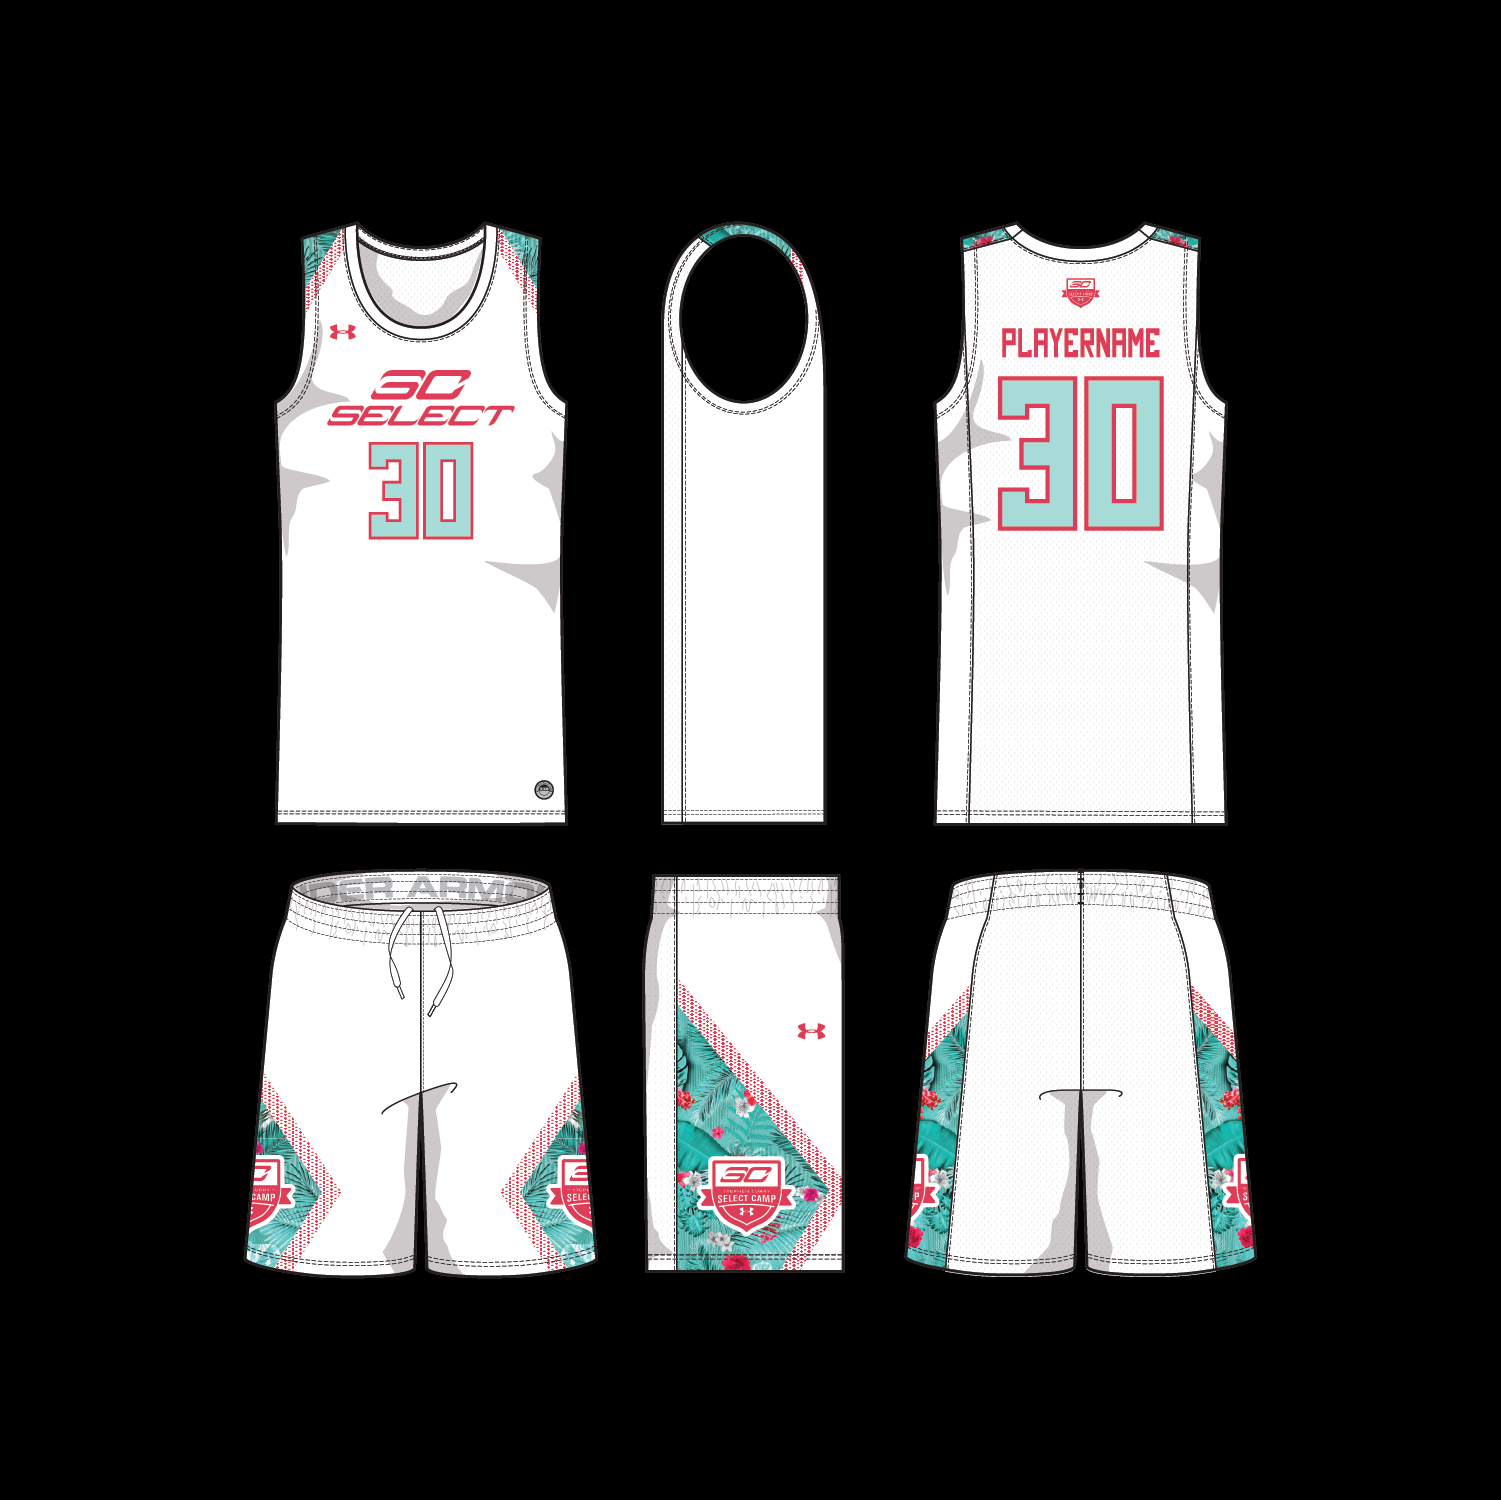 White Game UnIforms. Floral and hex prints picked up from Curry 6 shoe designed for SC30 Select Camp.